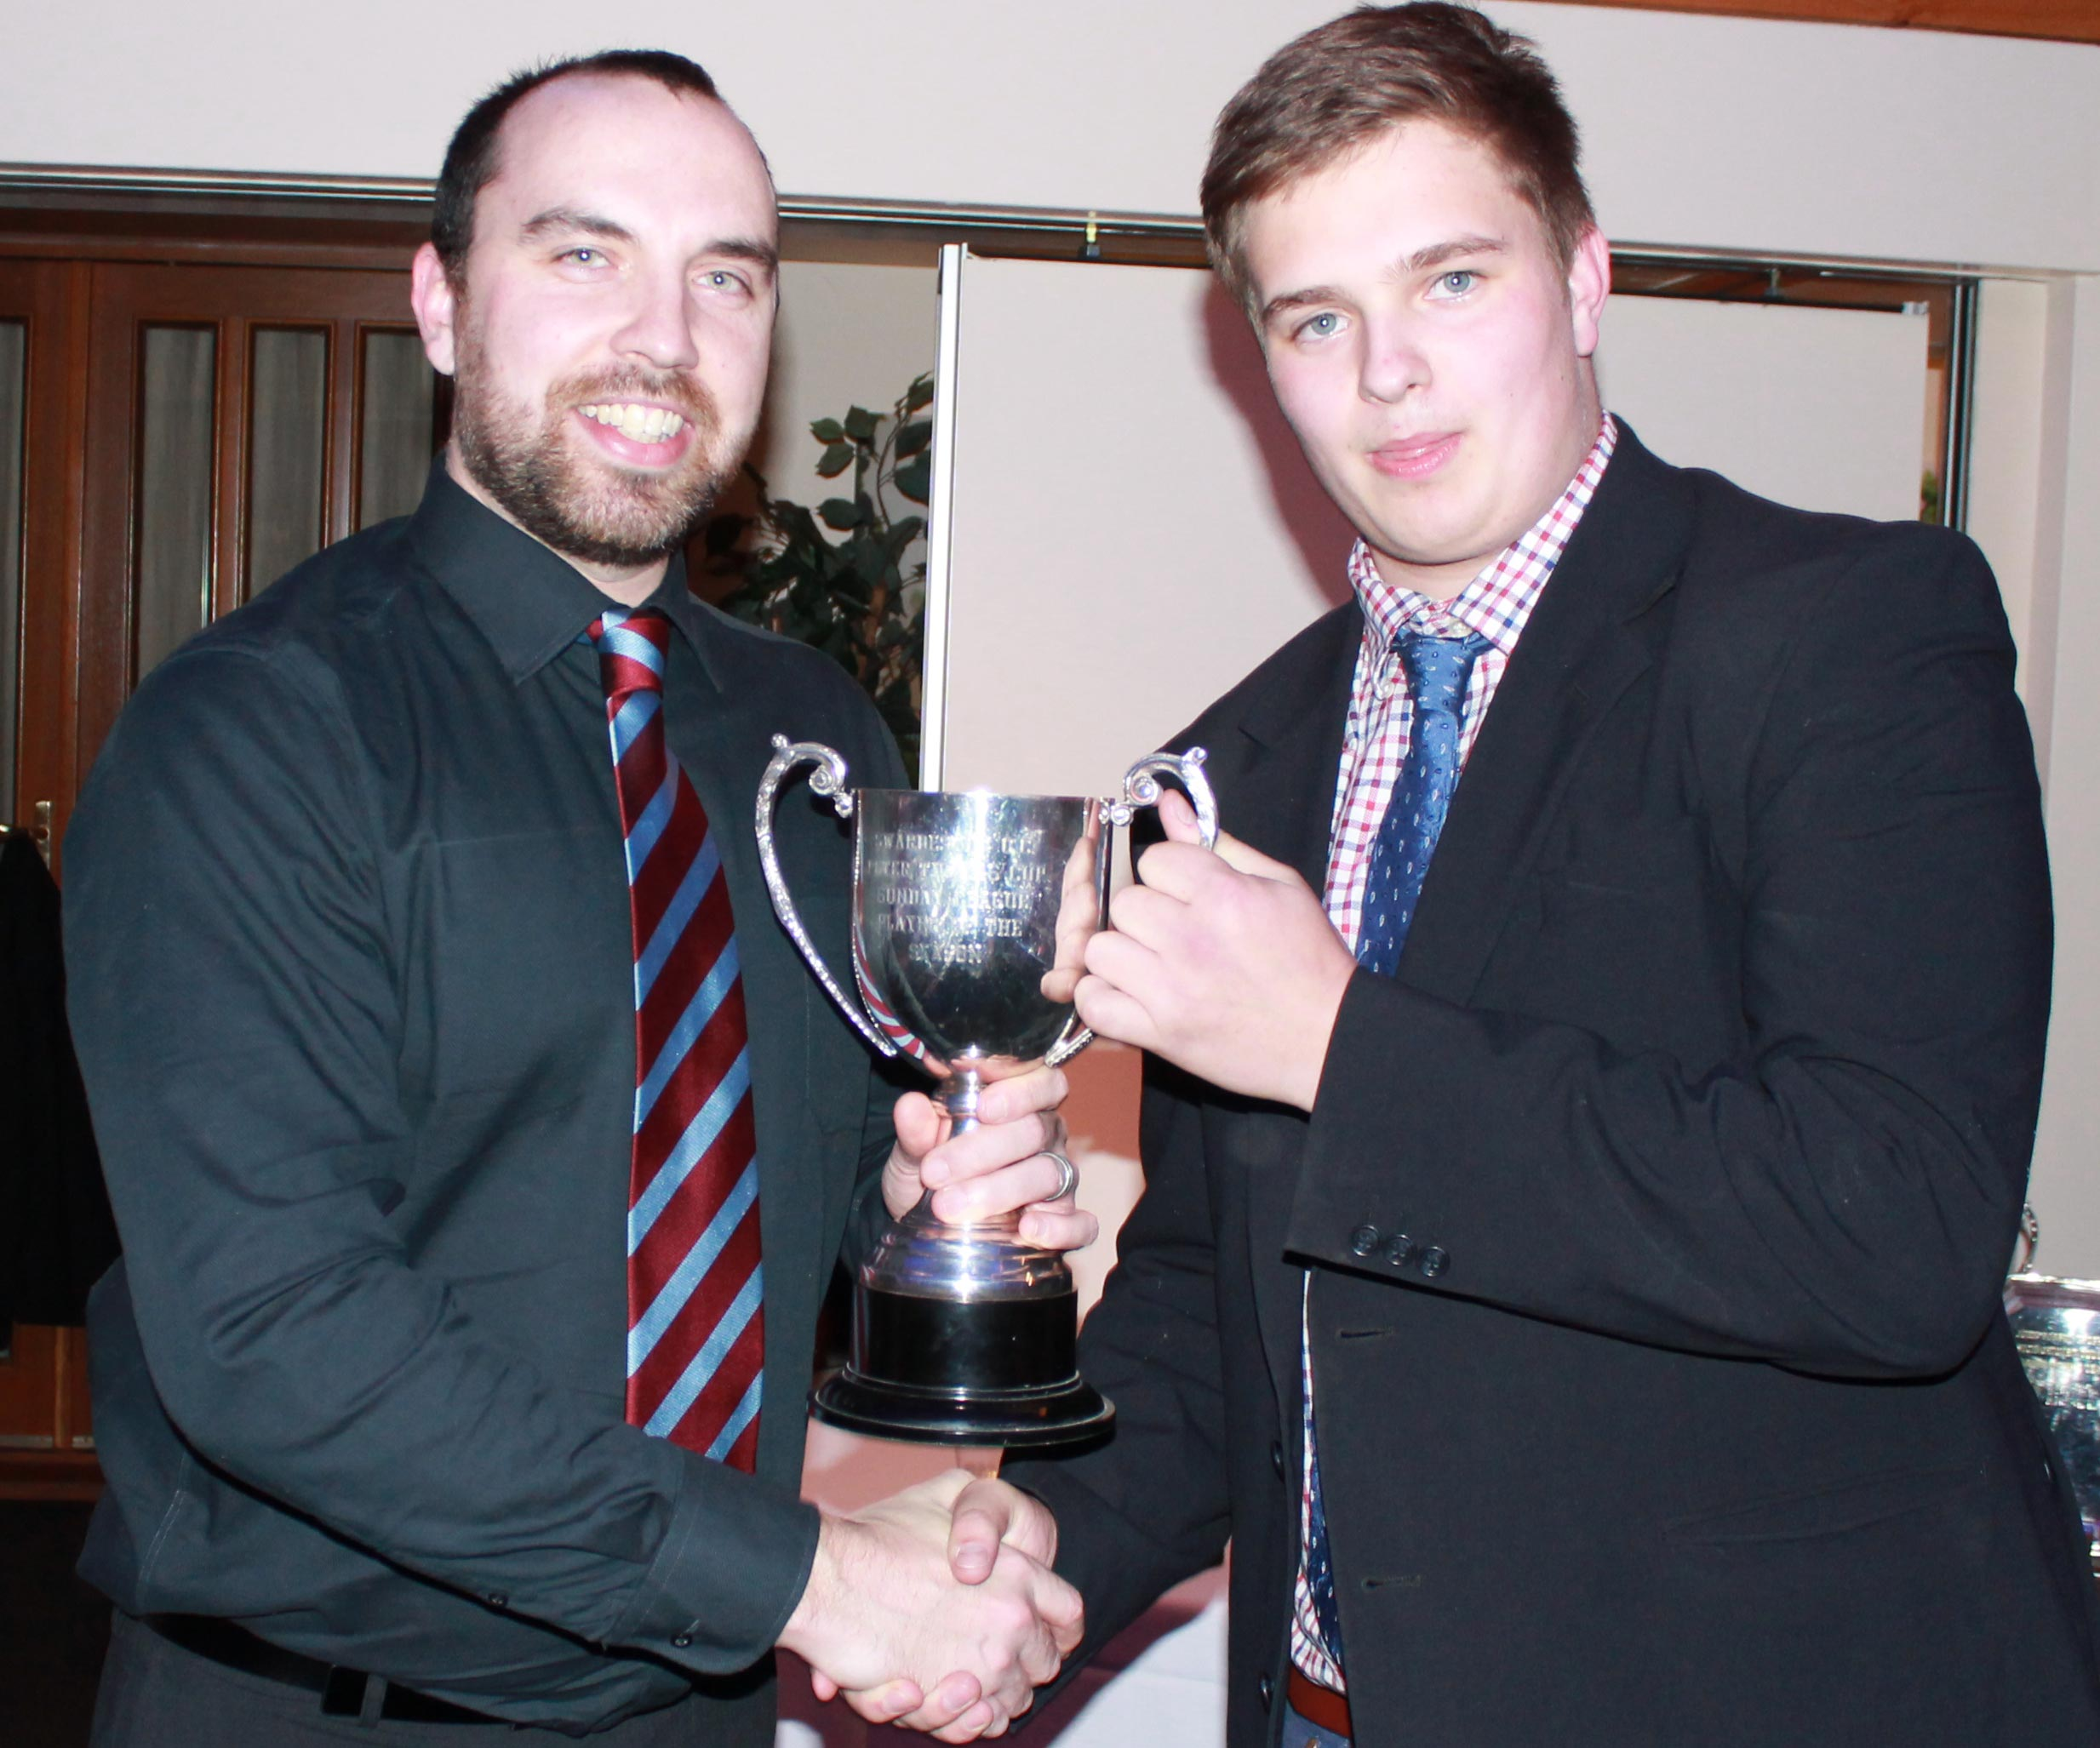 Will Kidner picks up the Peter Thomas Trophy from captain Ben Hogg as Swardeston Sunday player of the year.